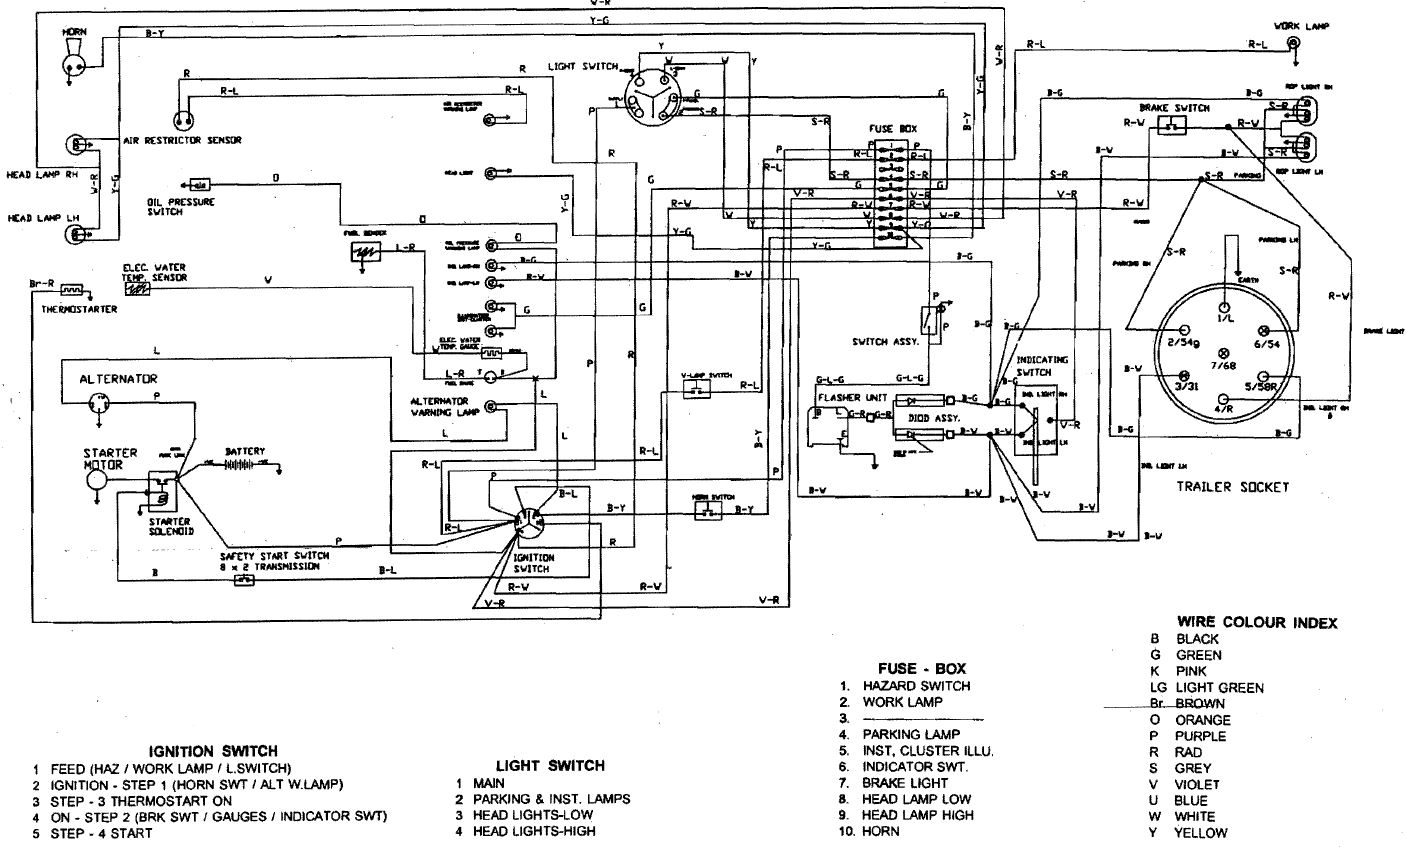 20158463319_b82d524c3d_o ignition switch wiring diagram Case IH 430 H Starter Wiring Diagrams at soozxer.org